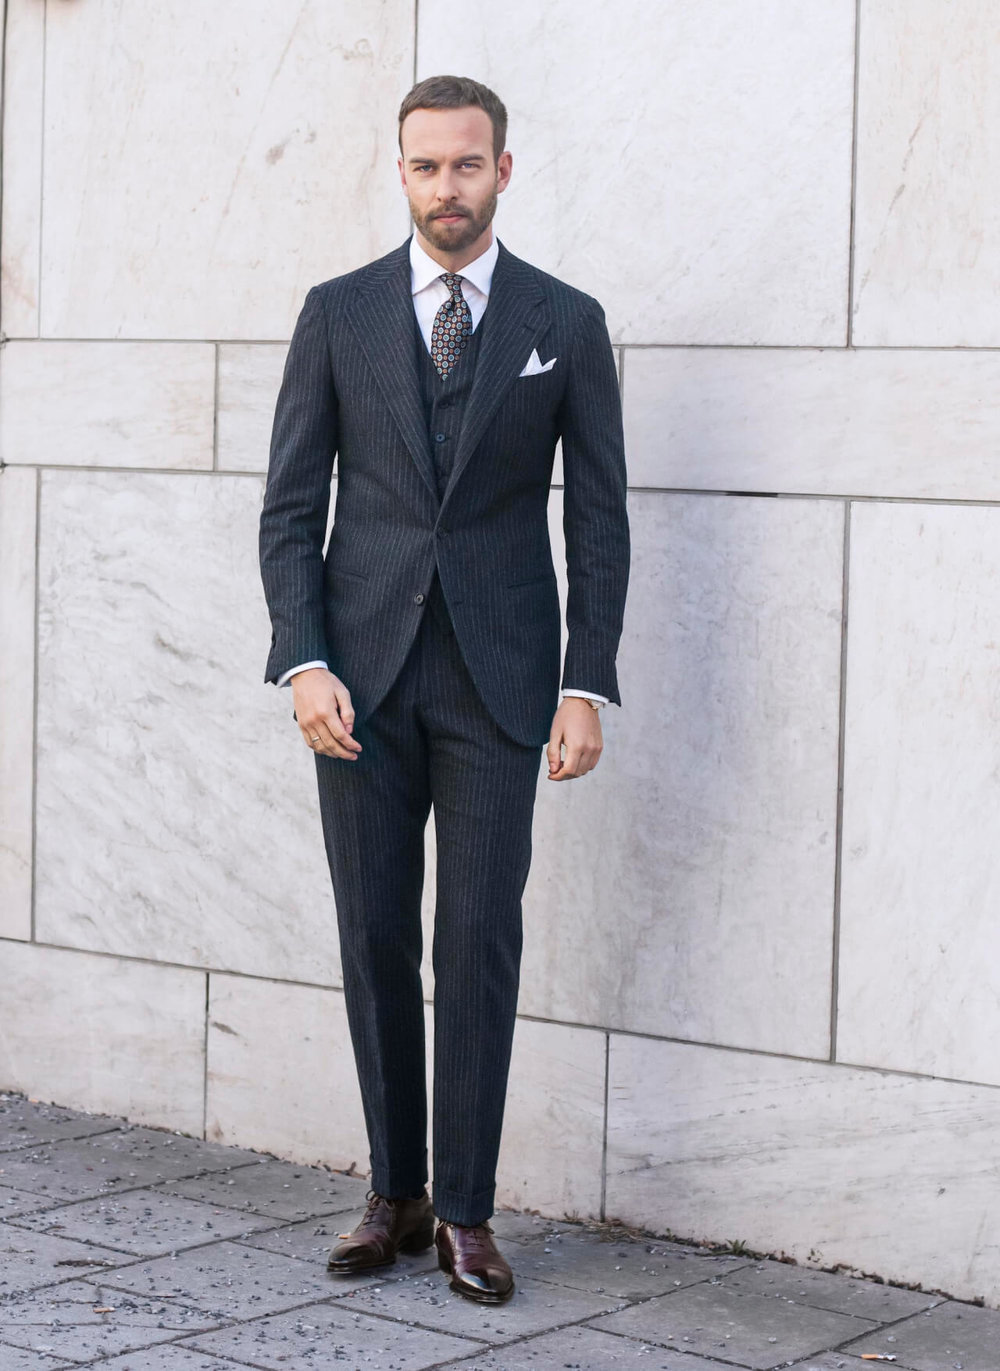 Modern-cut-three-piece-suit-with-simple-white-linen-pocket-square-and-printed-tie.jpg